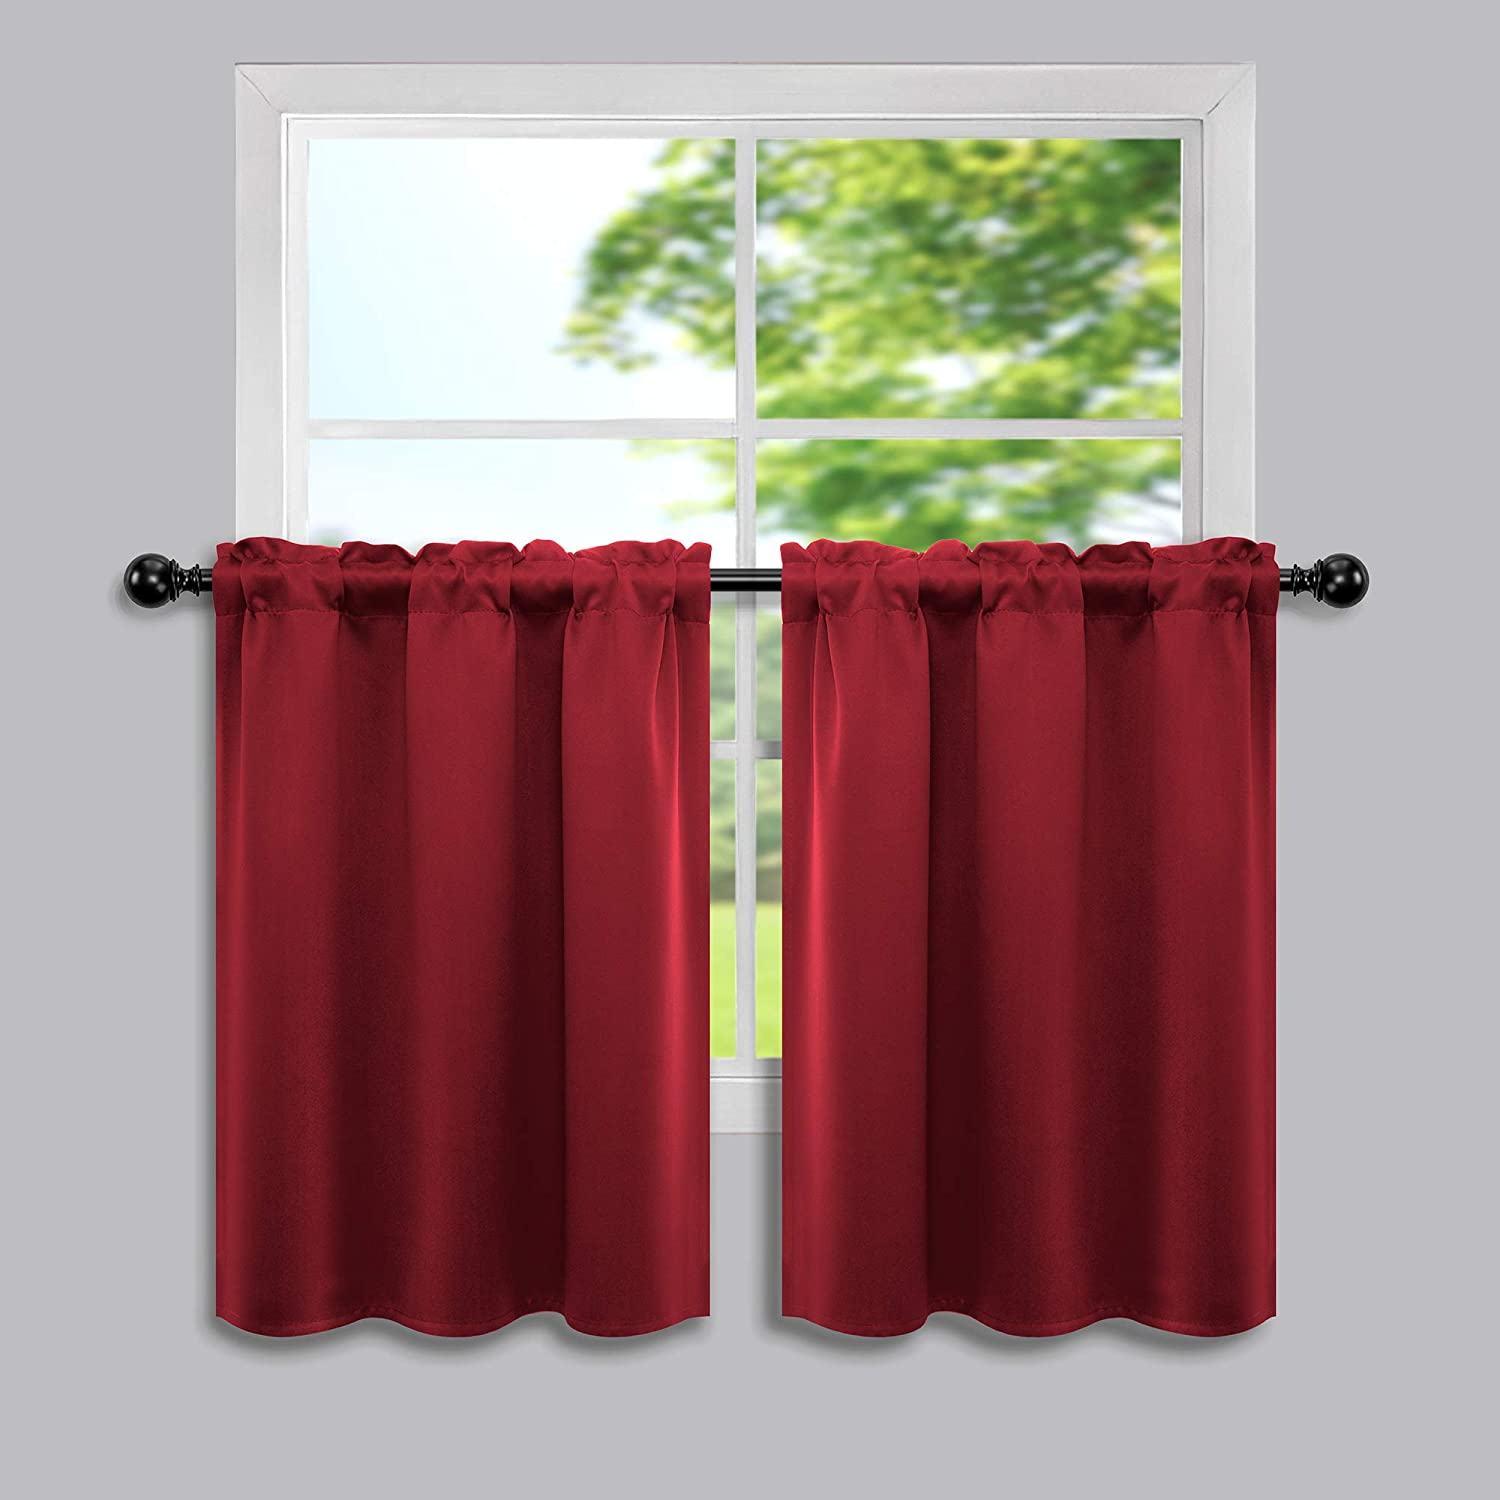 Red Curtains 30 Inch Length for Kitchen Windows Set of 2 Pack Blackout Room Darkening Short Curtains for Bedroom Bathroom 34x30 Long